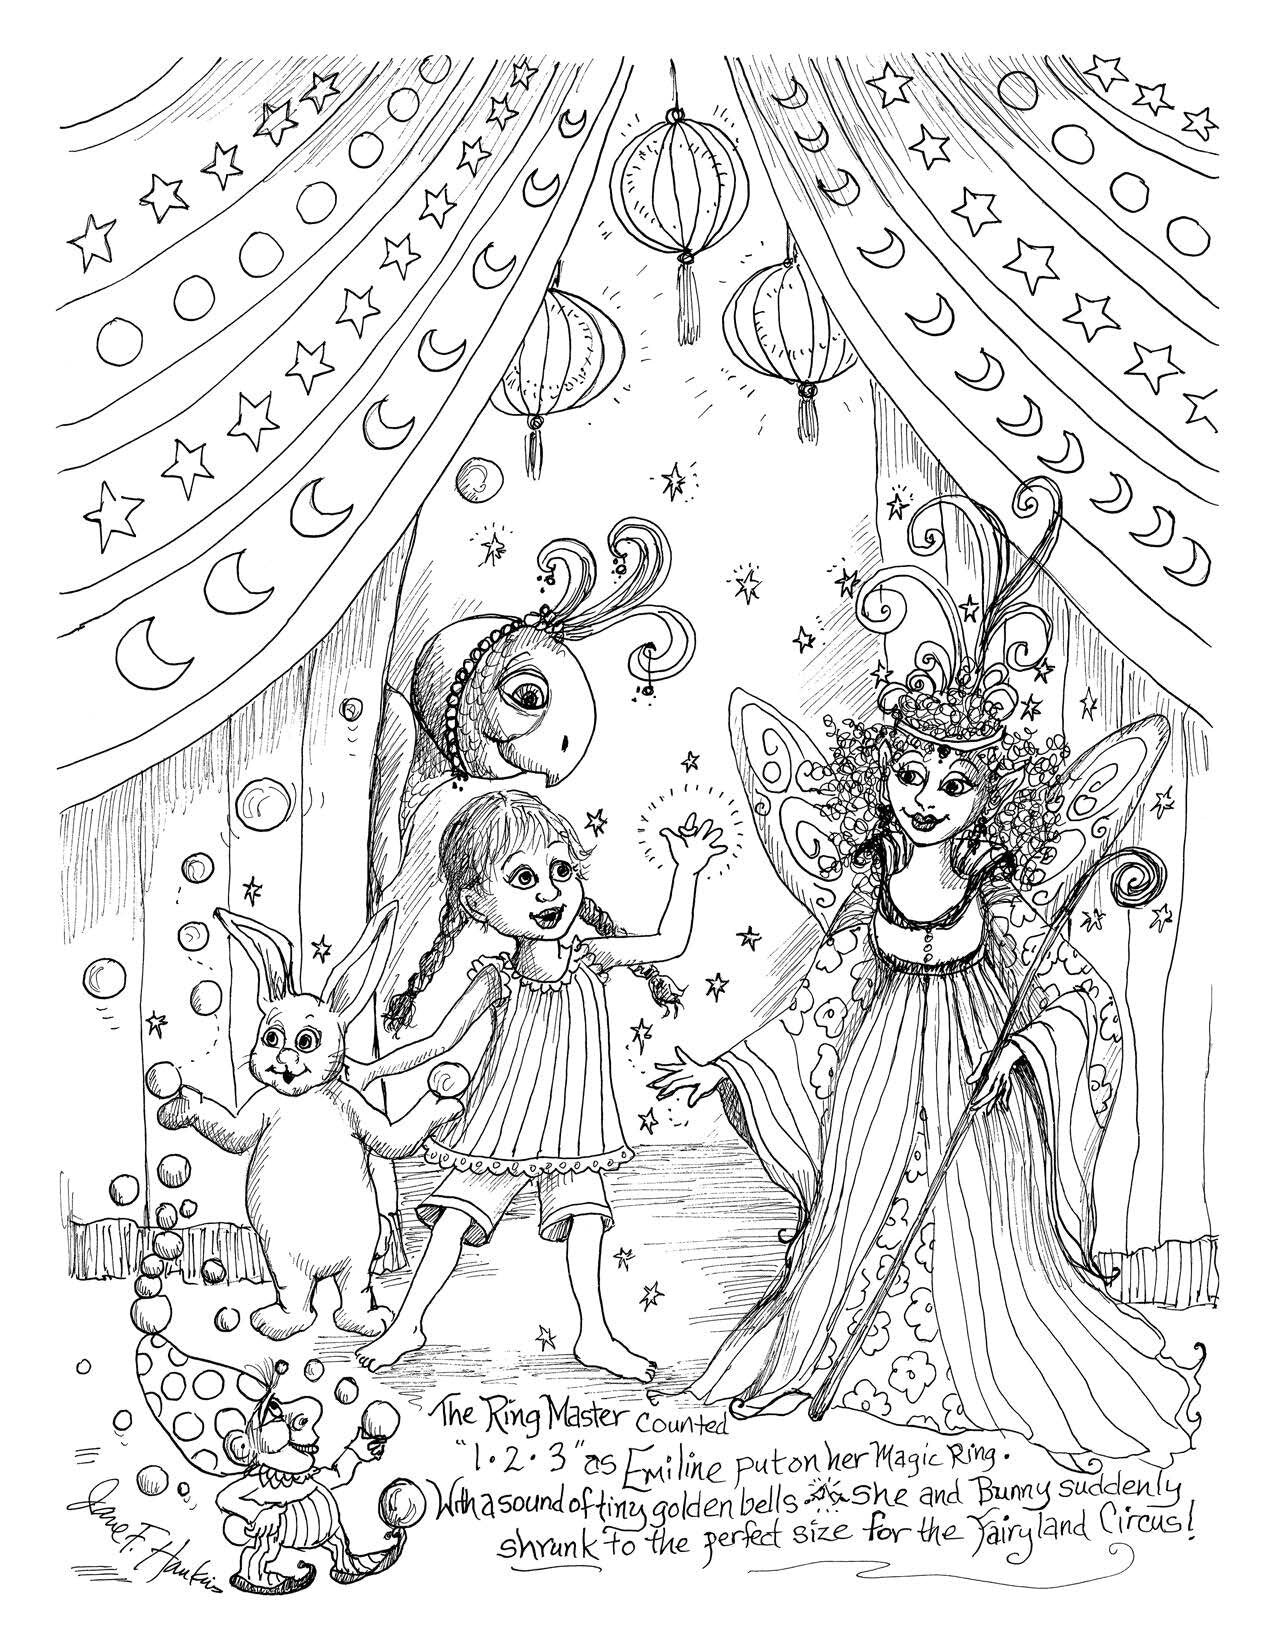 The Fairyland Circus from The Imaginary World of Jane F Hankins (Digital PDF)